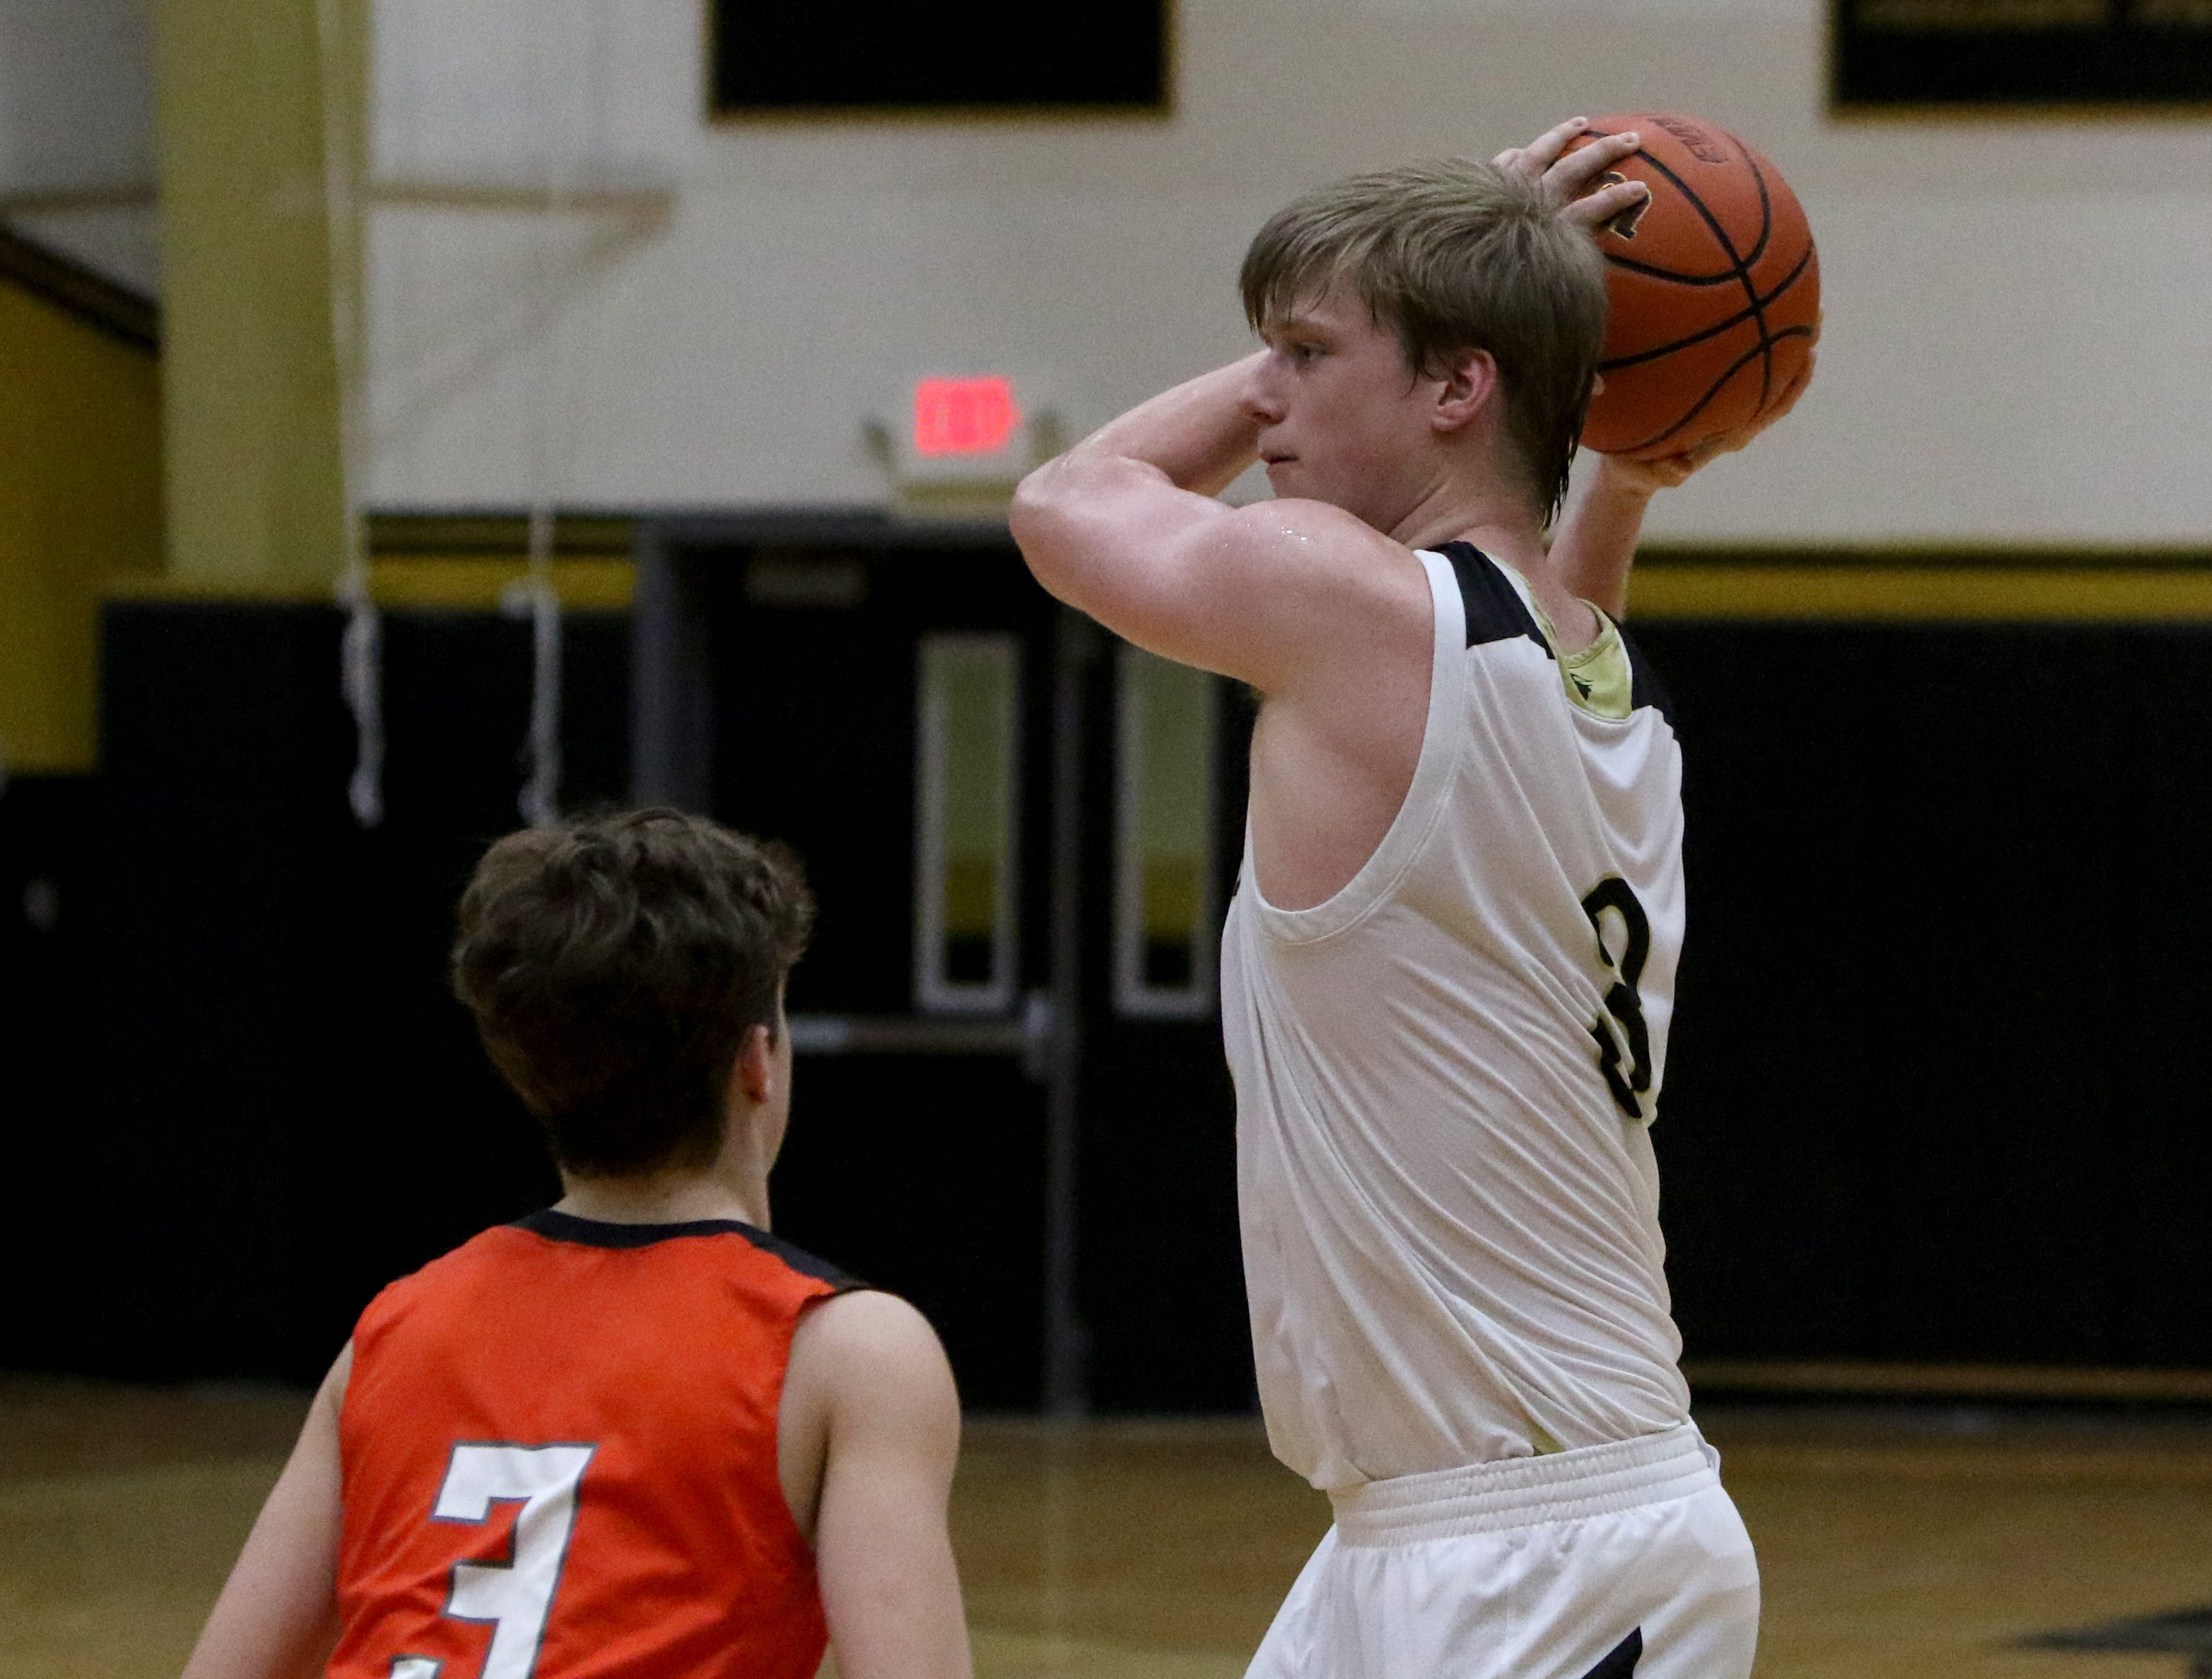 Rider's Ben Moffat looks to pass in the game against Aledo Tuesday, Feb. 5, 2019, at Rider. The Raiders defeated the Bearcats 64-51.